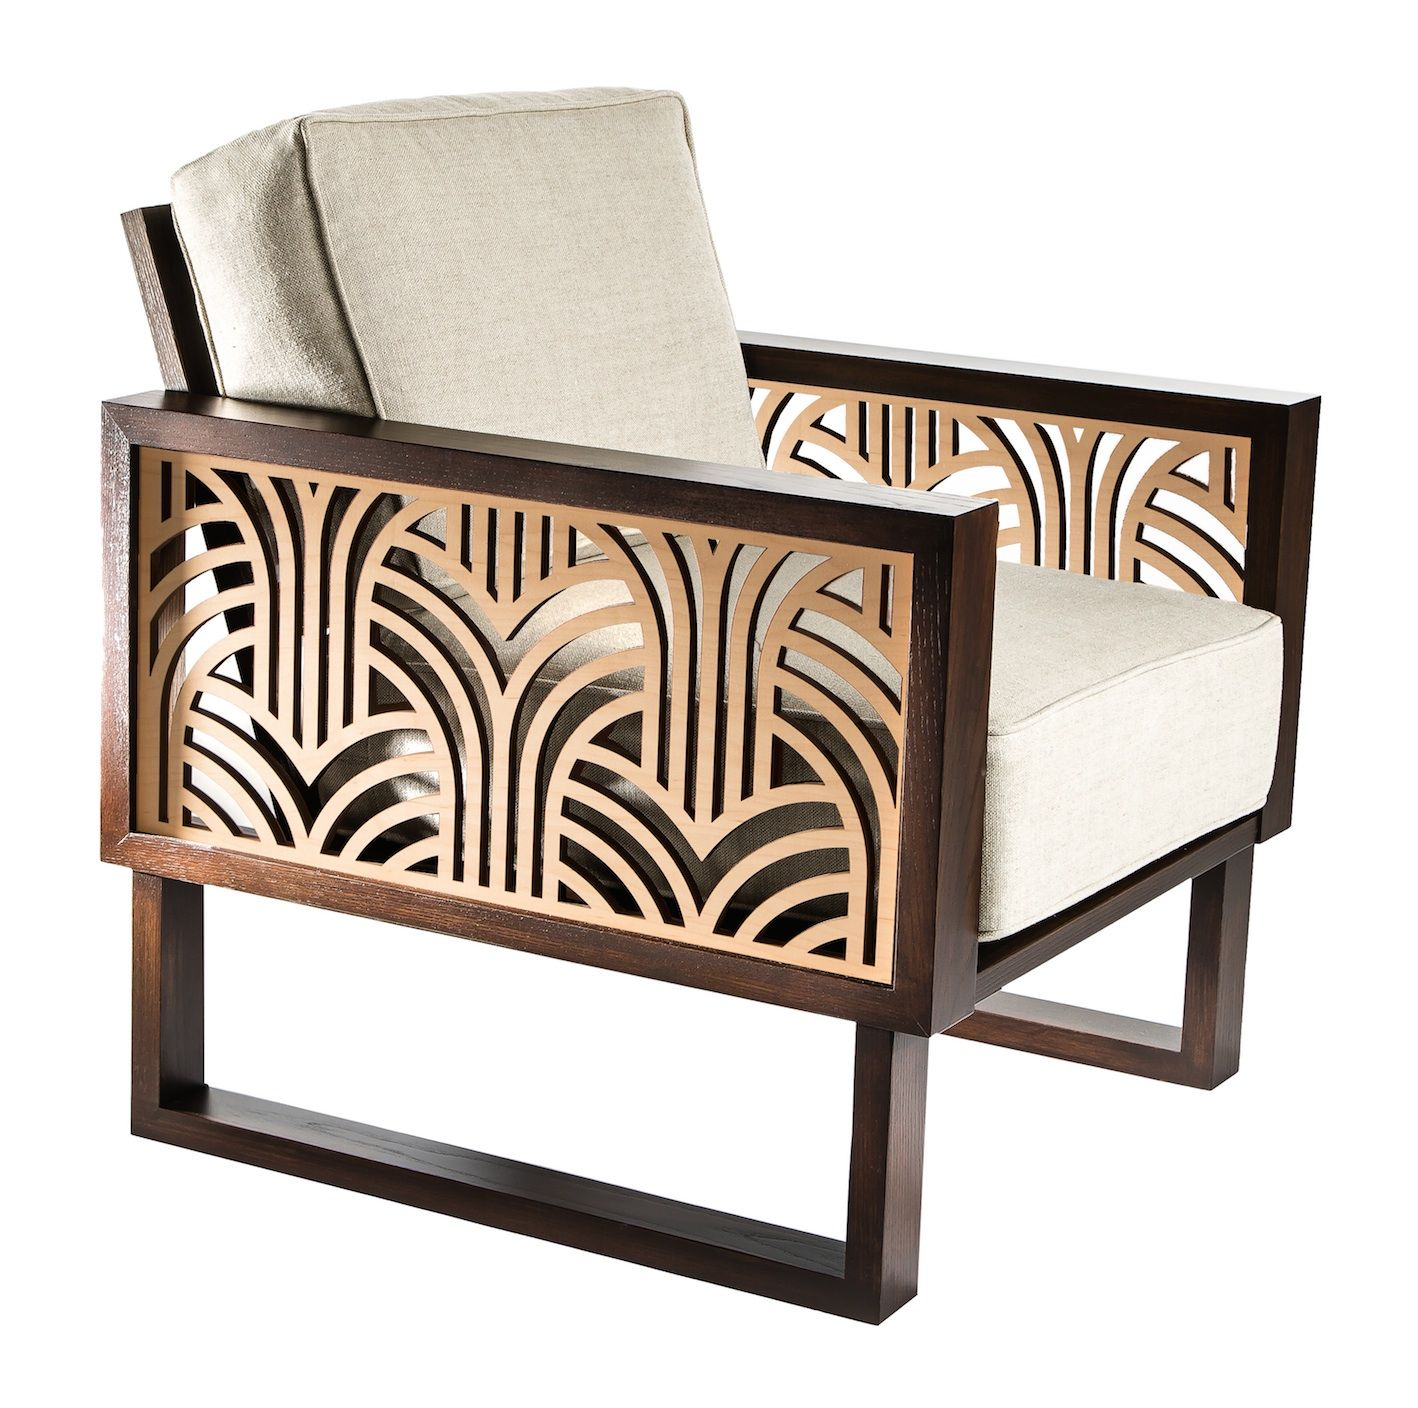 Art Deco Armchair - Twist Modern  Art deco chair, Art deco